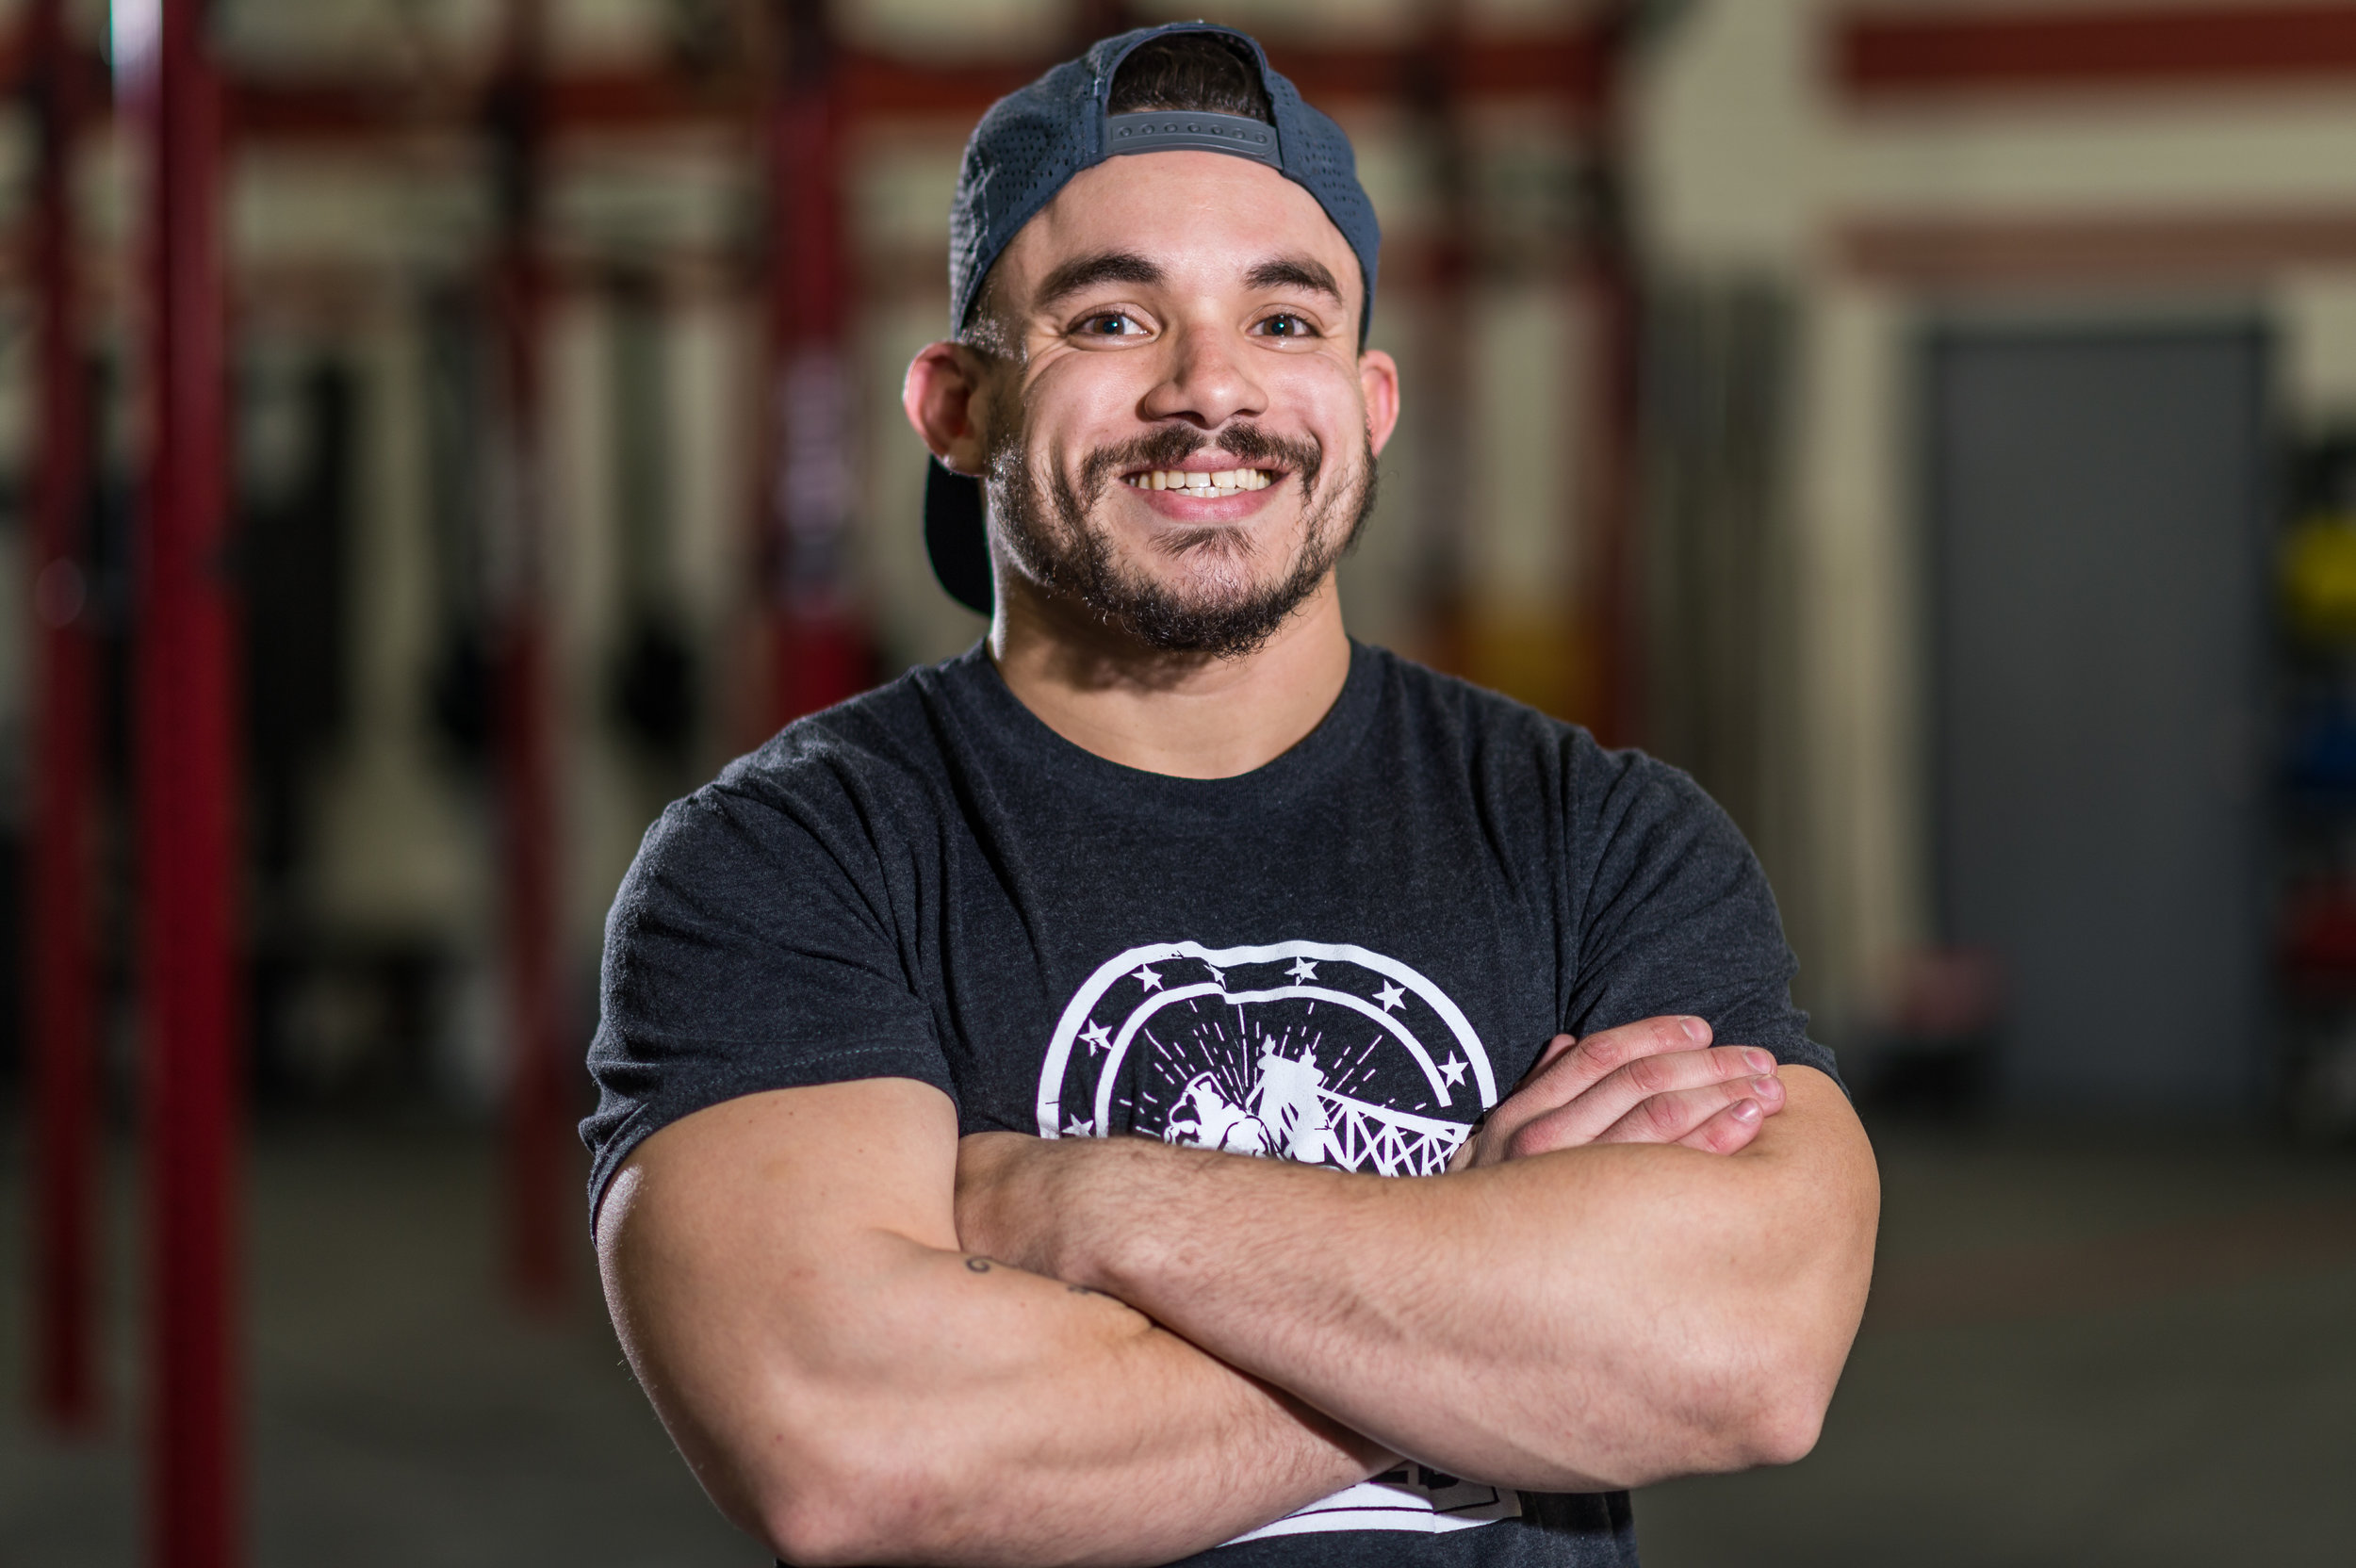 JON PABON   Hometown: Brooklyn, New York  CrossFit Level 1 CrossFit Strongman  CrossFitting since 2014 Favorite Movement: Squat Clean Least Favorite Movement: Wallball